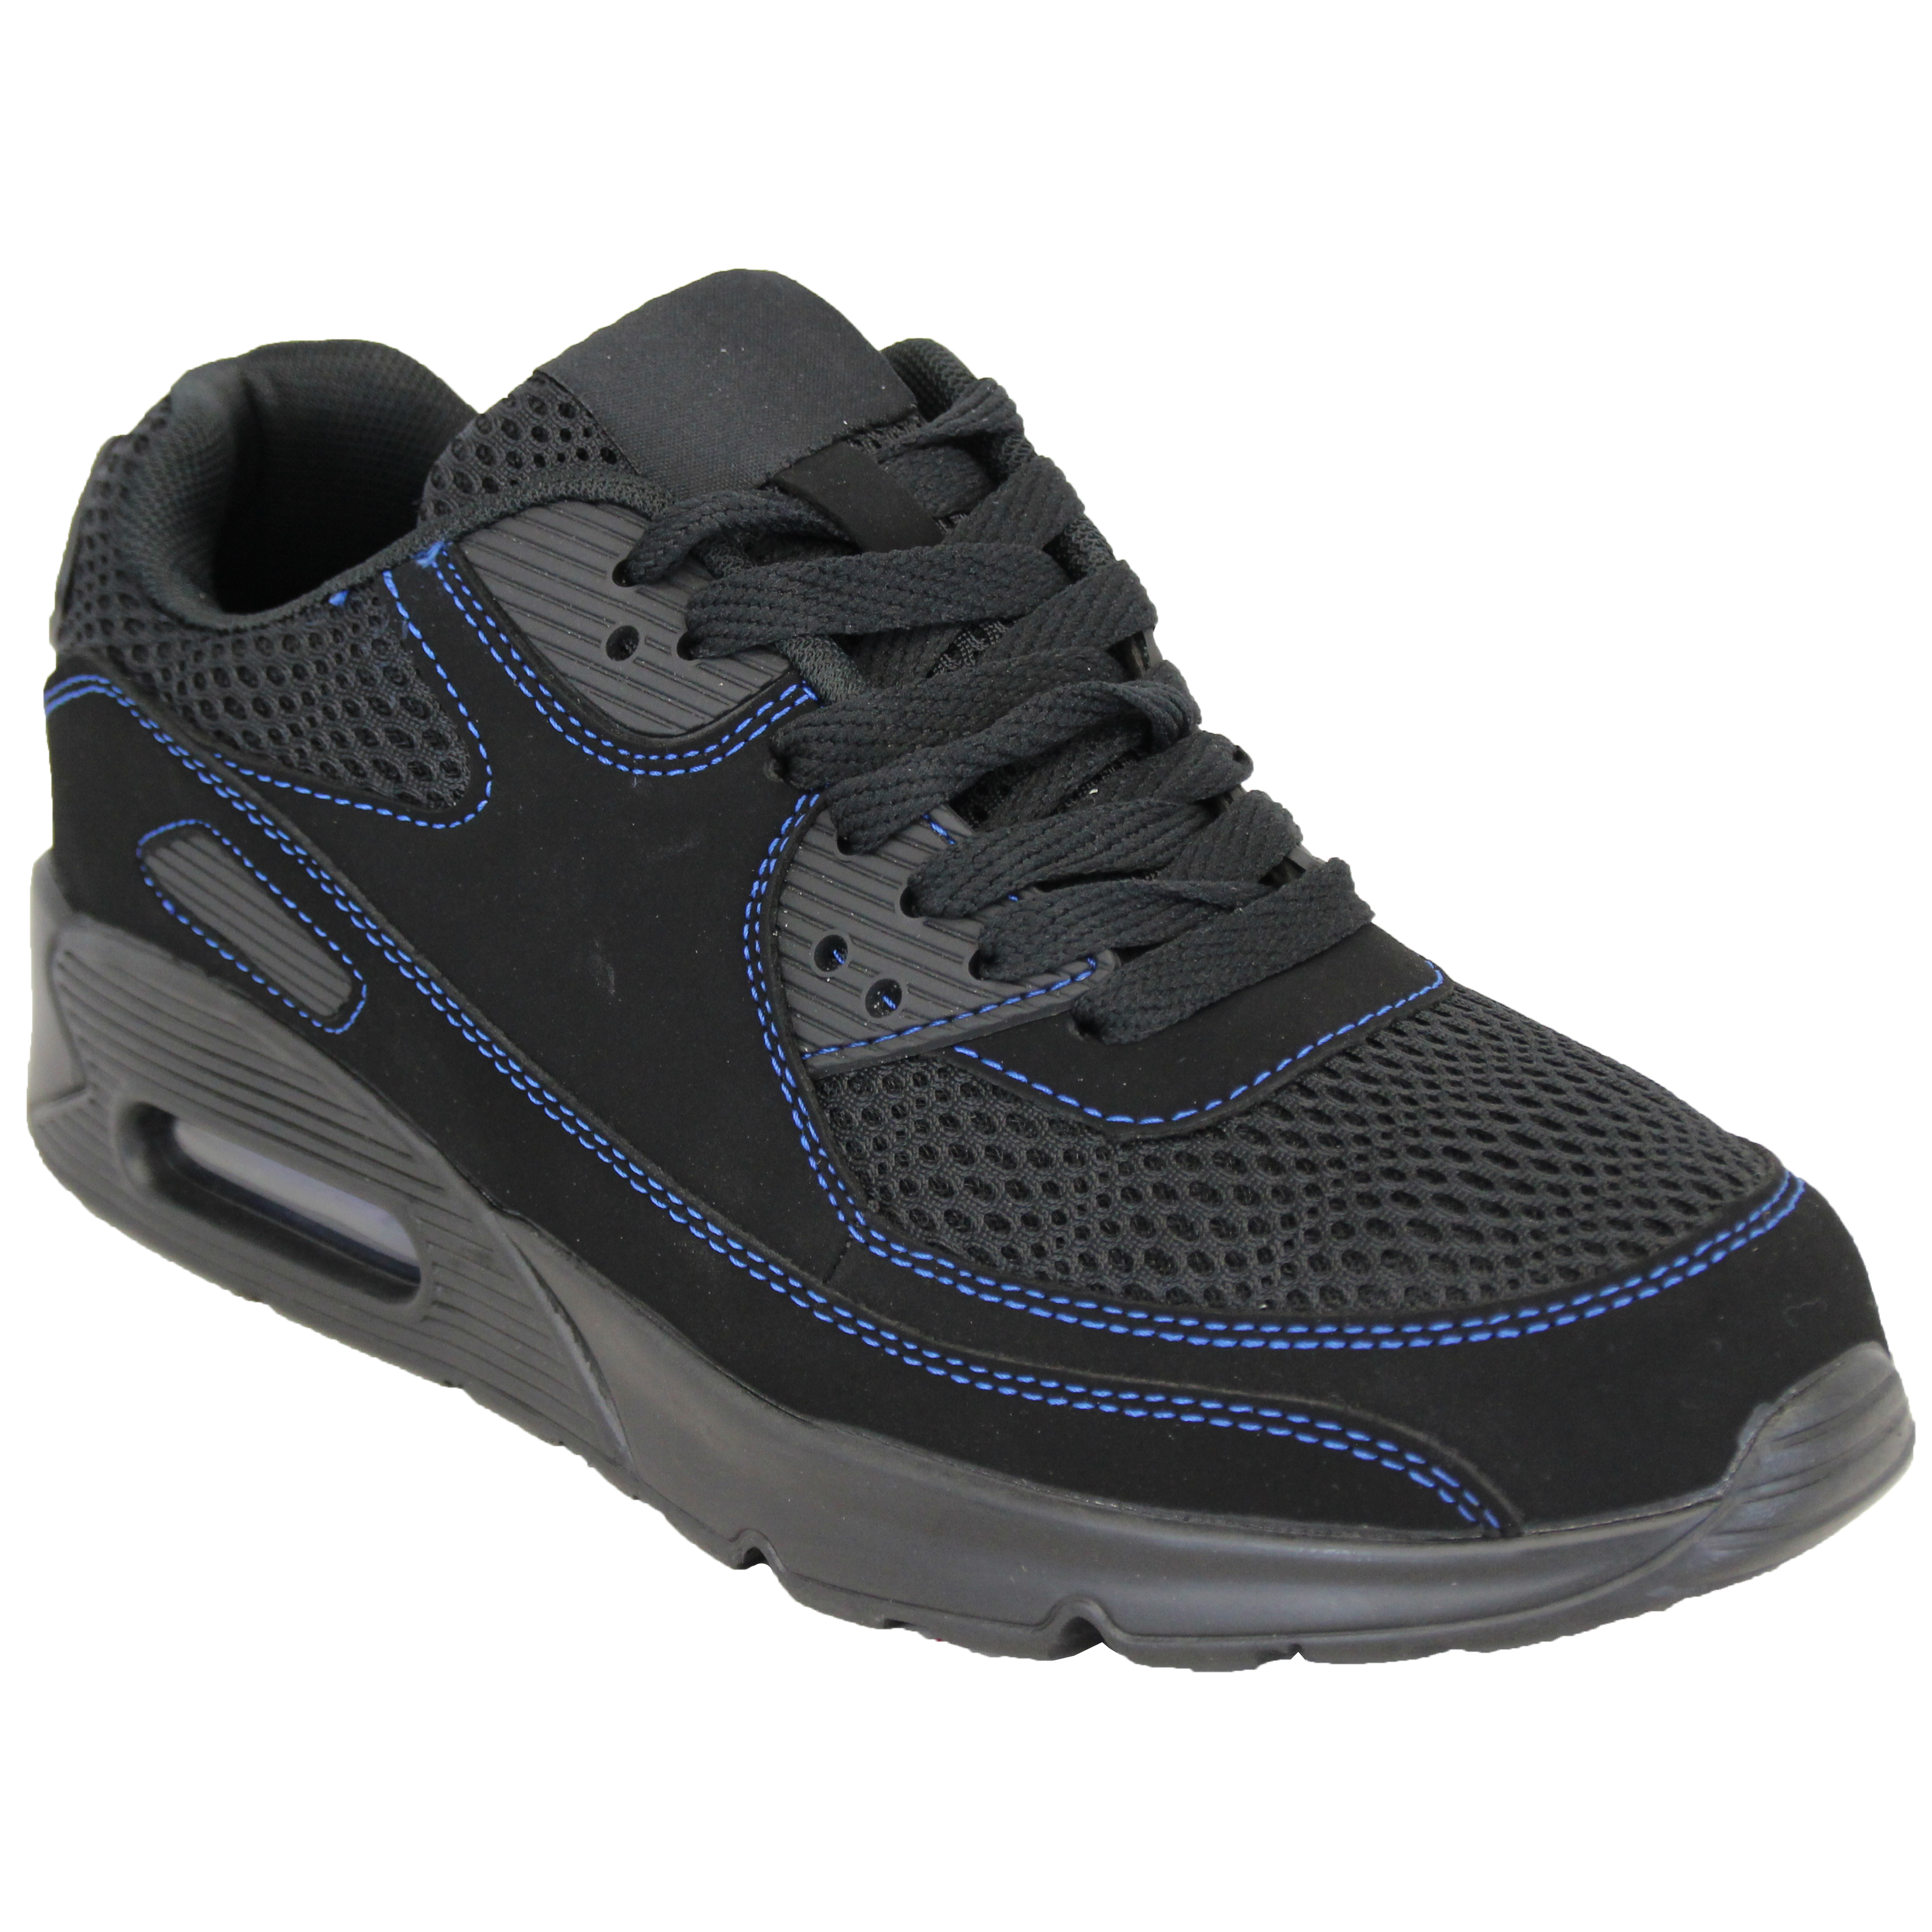 Mens-Bubble-Trainers-Lace-Up-Running-Shoes-Mesh-Jogging-Sports-Gym-Casual-New thumbnail 6